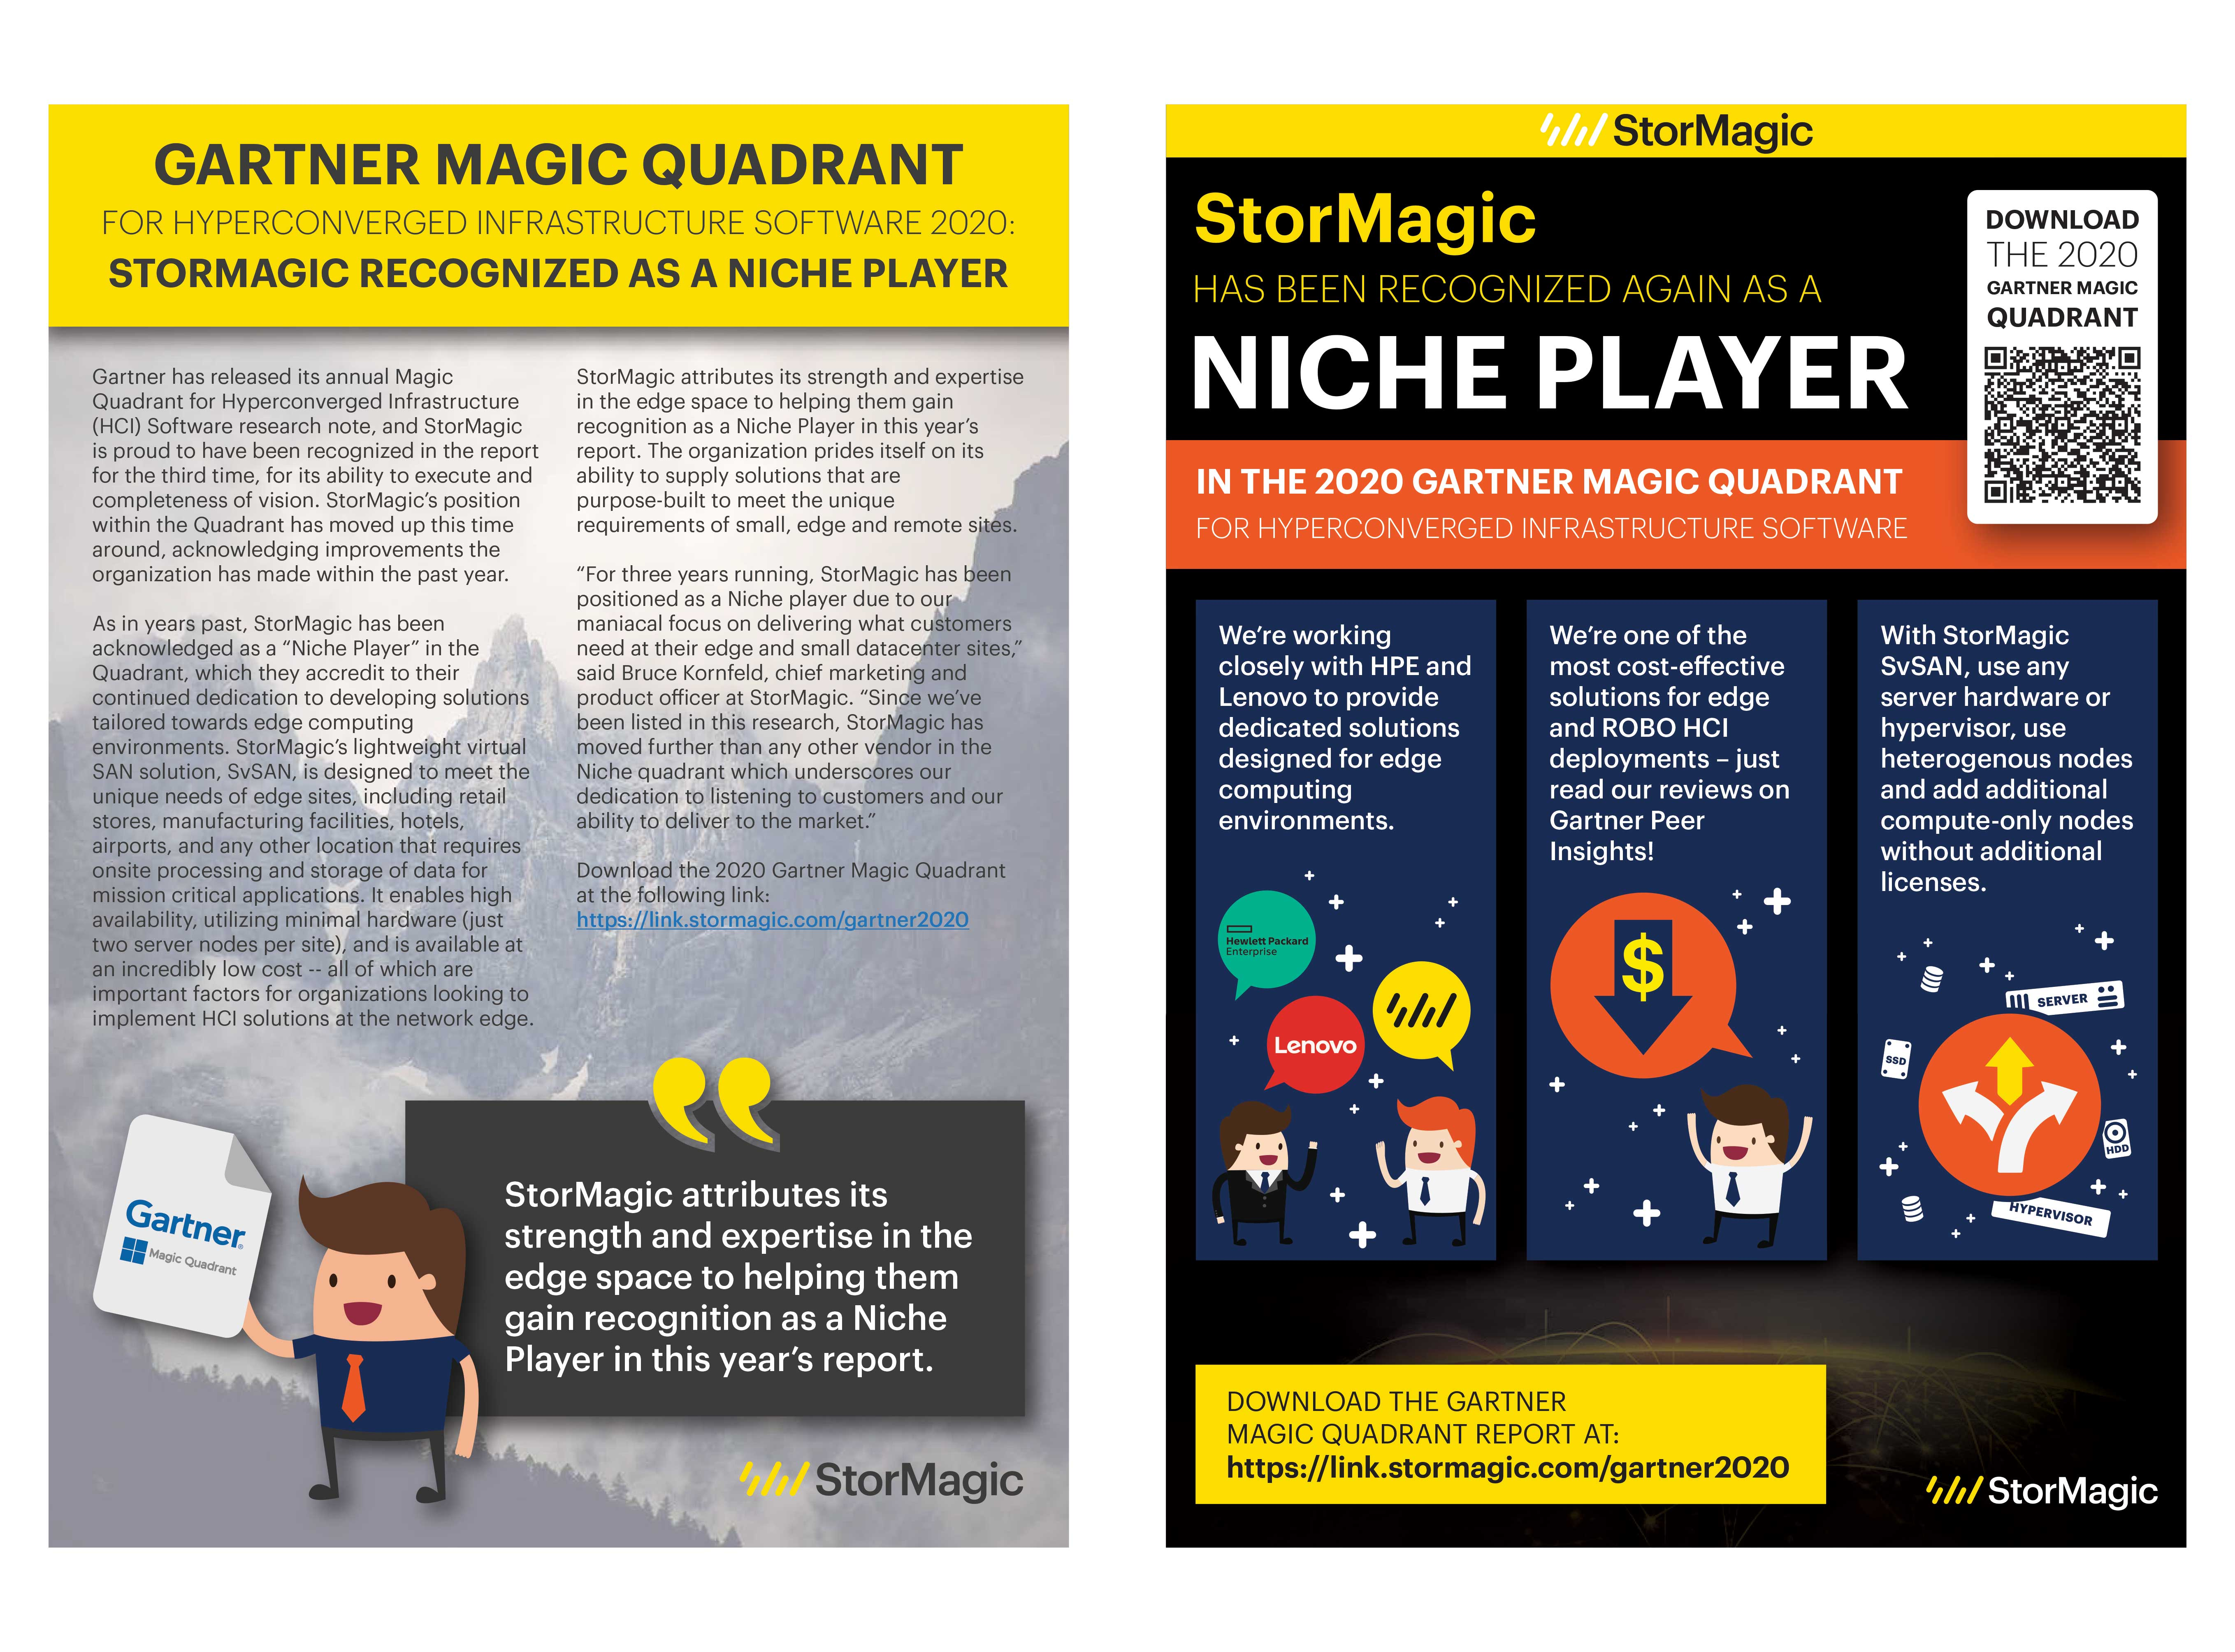 GARTNER MAGIC QUADRANT FOR HYPERCONVERGED INFRASTRUCTURE SOFTWARE 2020: STORMAGIC RECOGNIZED AS A NICHE PLAYER